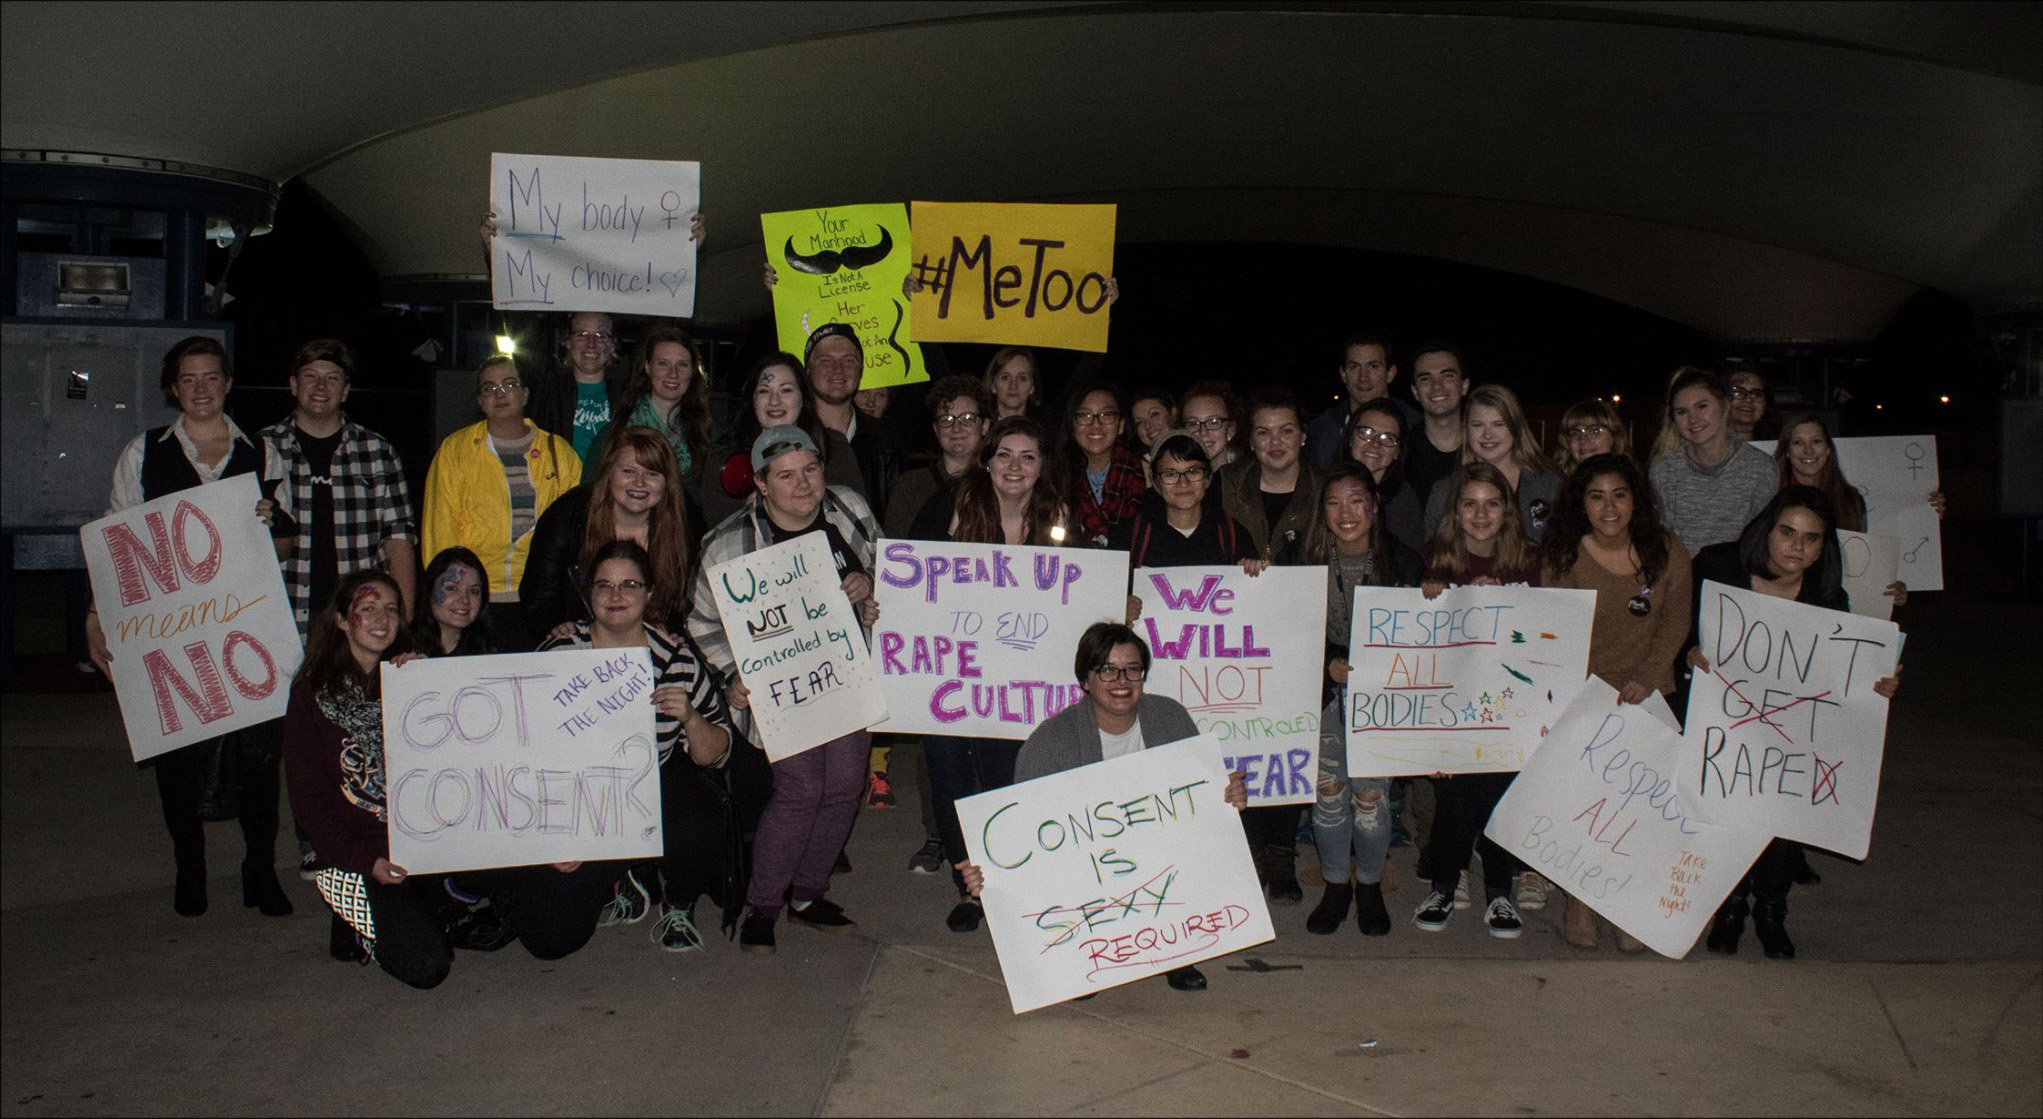 Students holding signs in favor of consent and the #MeToo movement